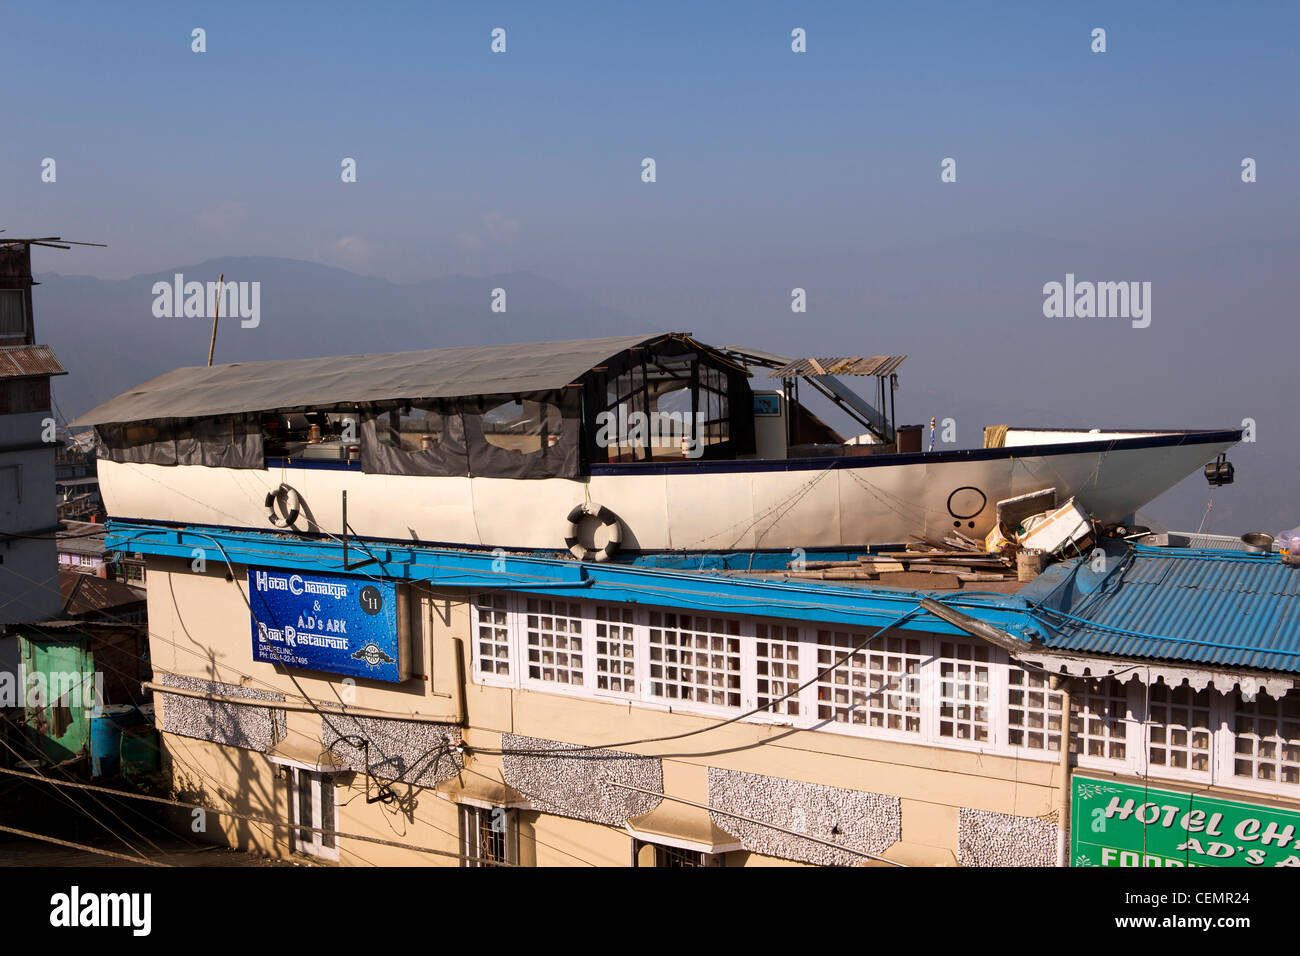 India, West Bengal, Darjeeling, eccentric architecture, boat shaped rooftop restaurant in Himalayas Stock Photo